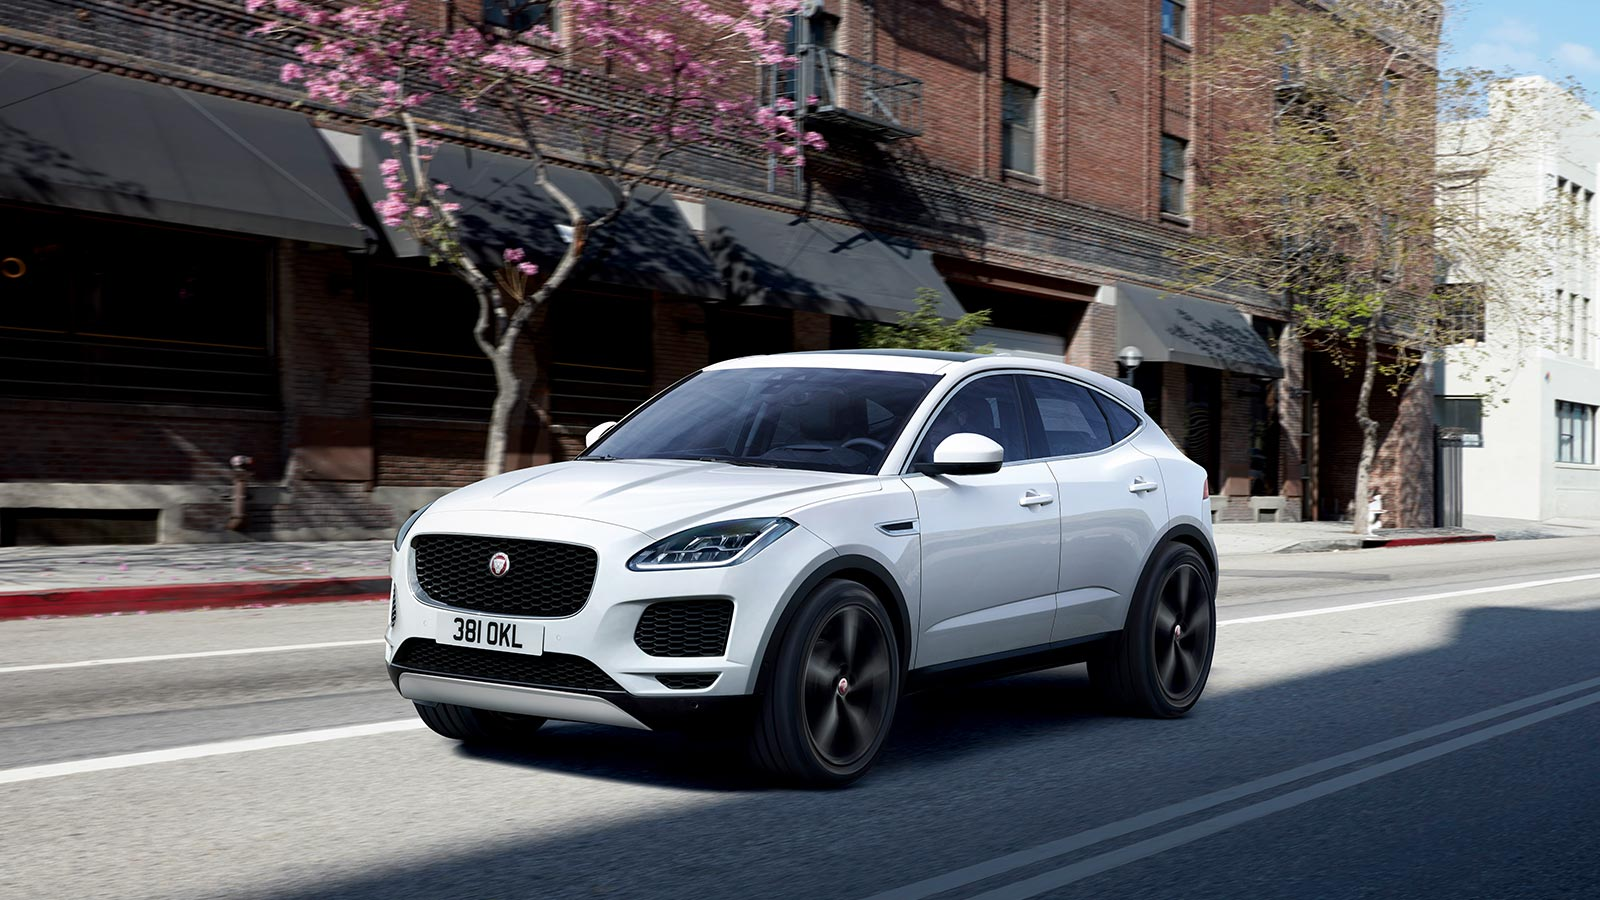 E-PACE S IN BORASCO GREY WITH OPTIONAL FEATURES FITTED DRIVING DOWN CITY STREET.